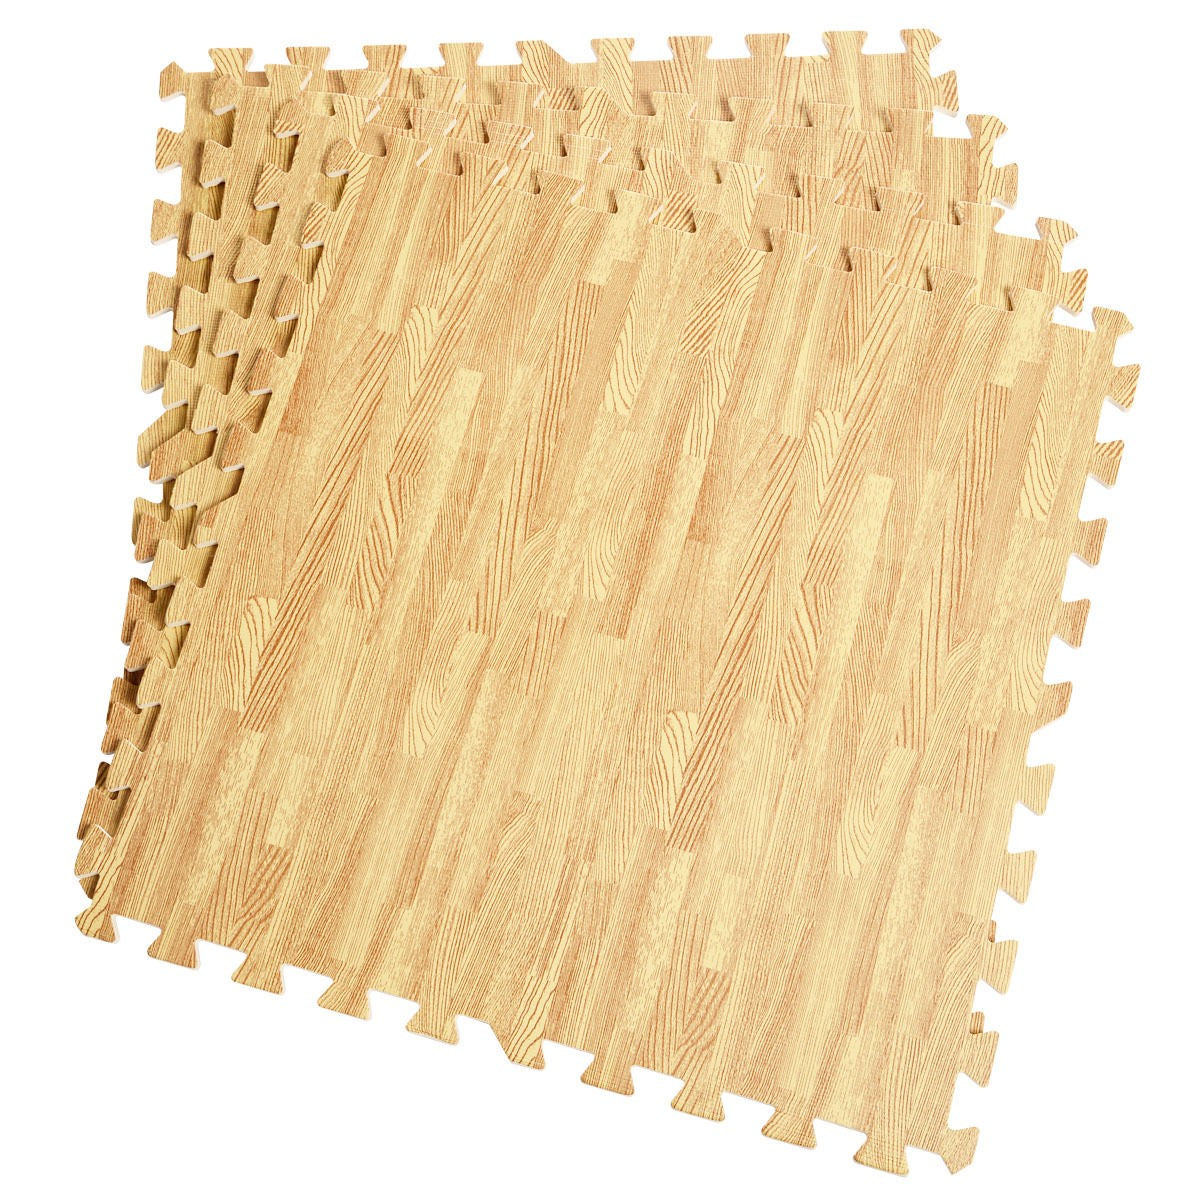 Wood Look EVA Foam Floor Interlocking Mat Show Floor Gym Mats - Uplift Active